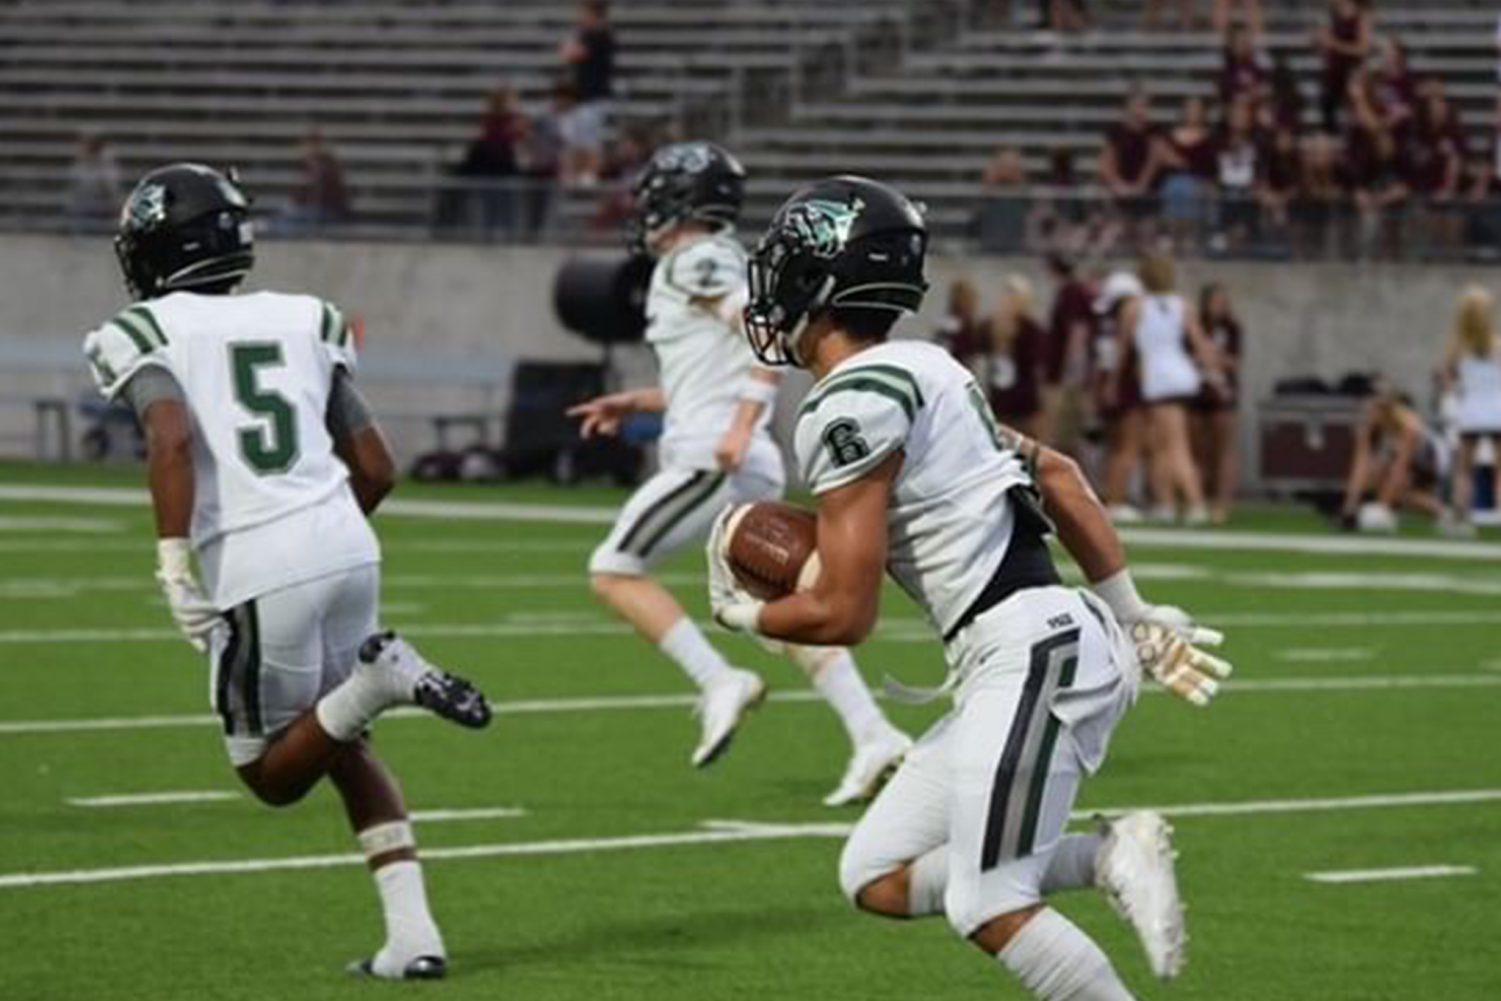 Junior Tammer Alzer returns a punt at Katy Cinco Ranch. Cedar Park won the game, 14-13, on Friday Sept. 21.